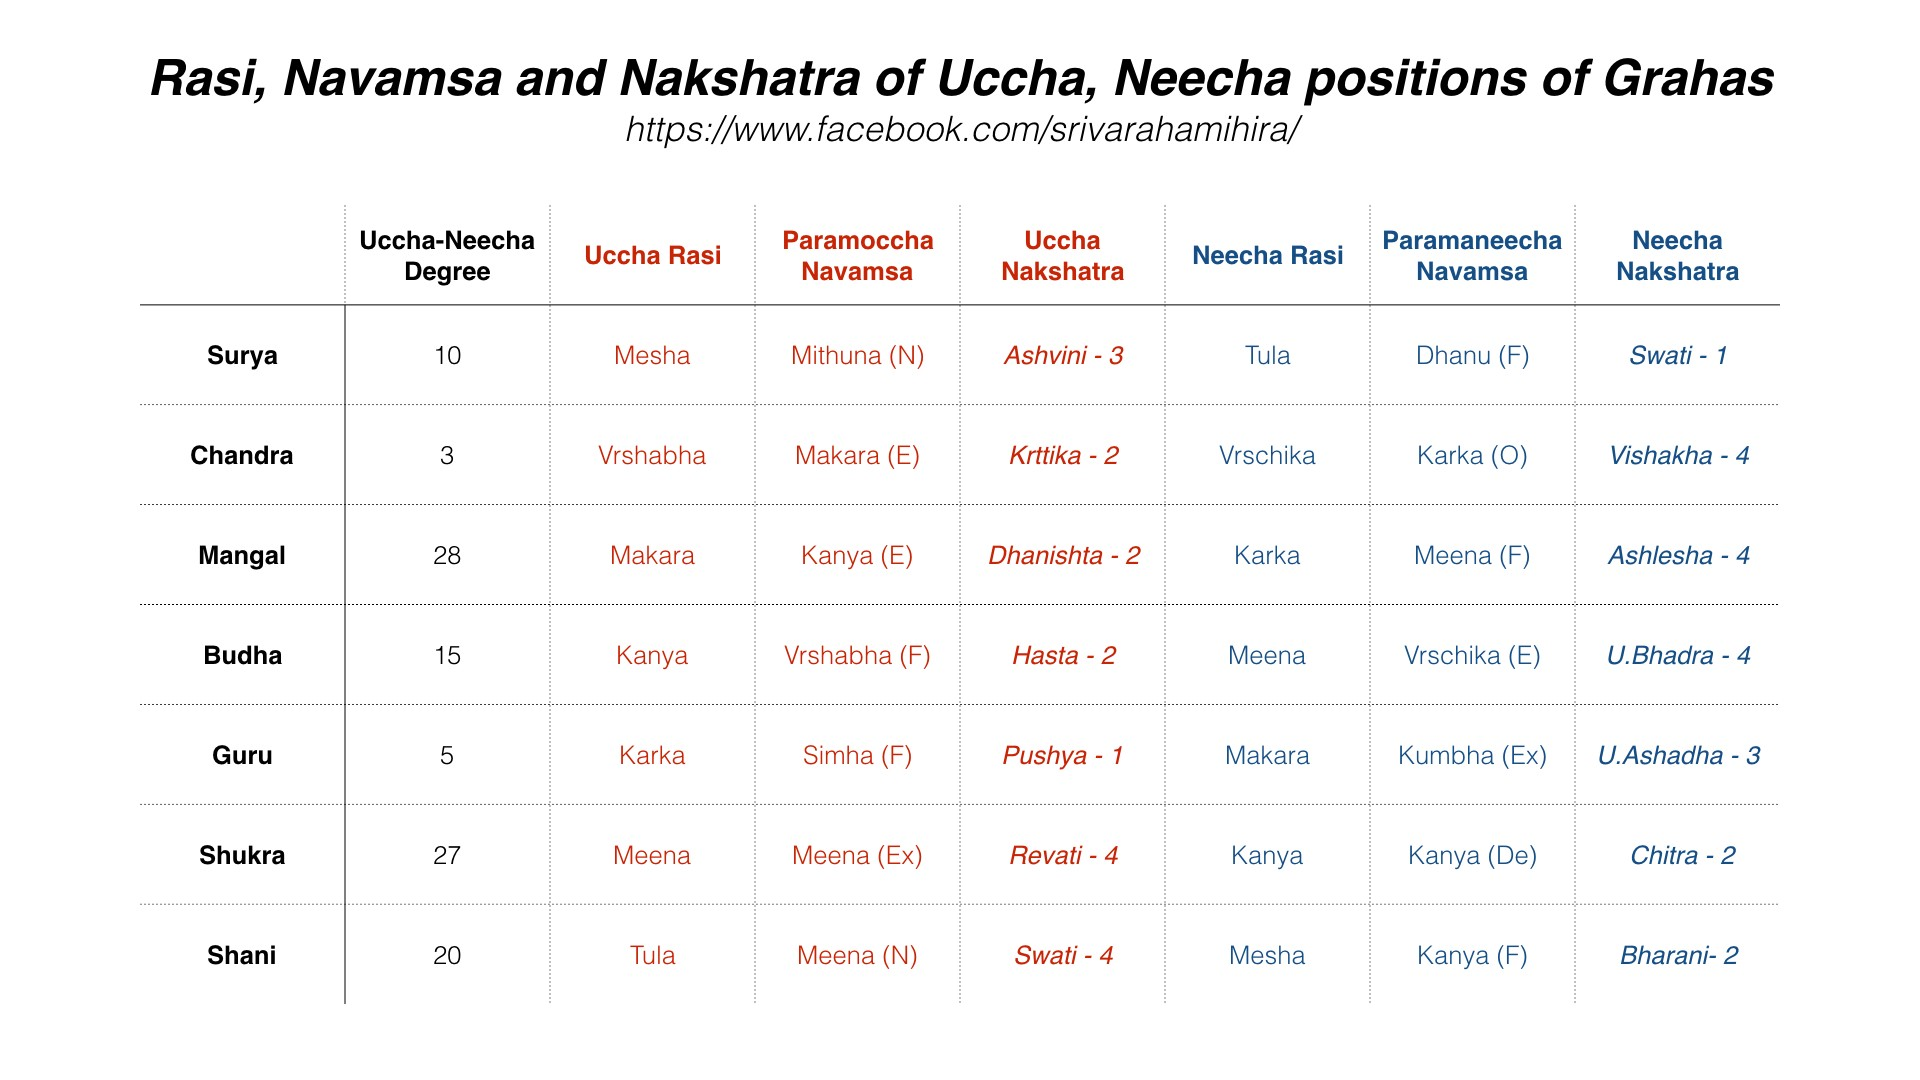 Reflections on Uccha and Neecha of Grahas - Thoughts on